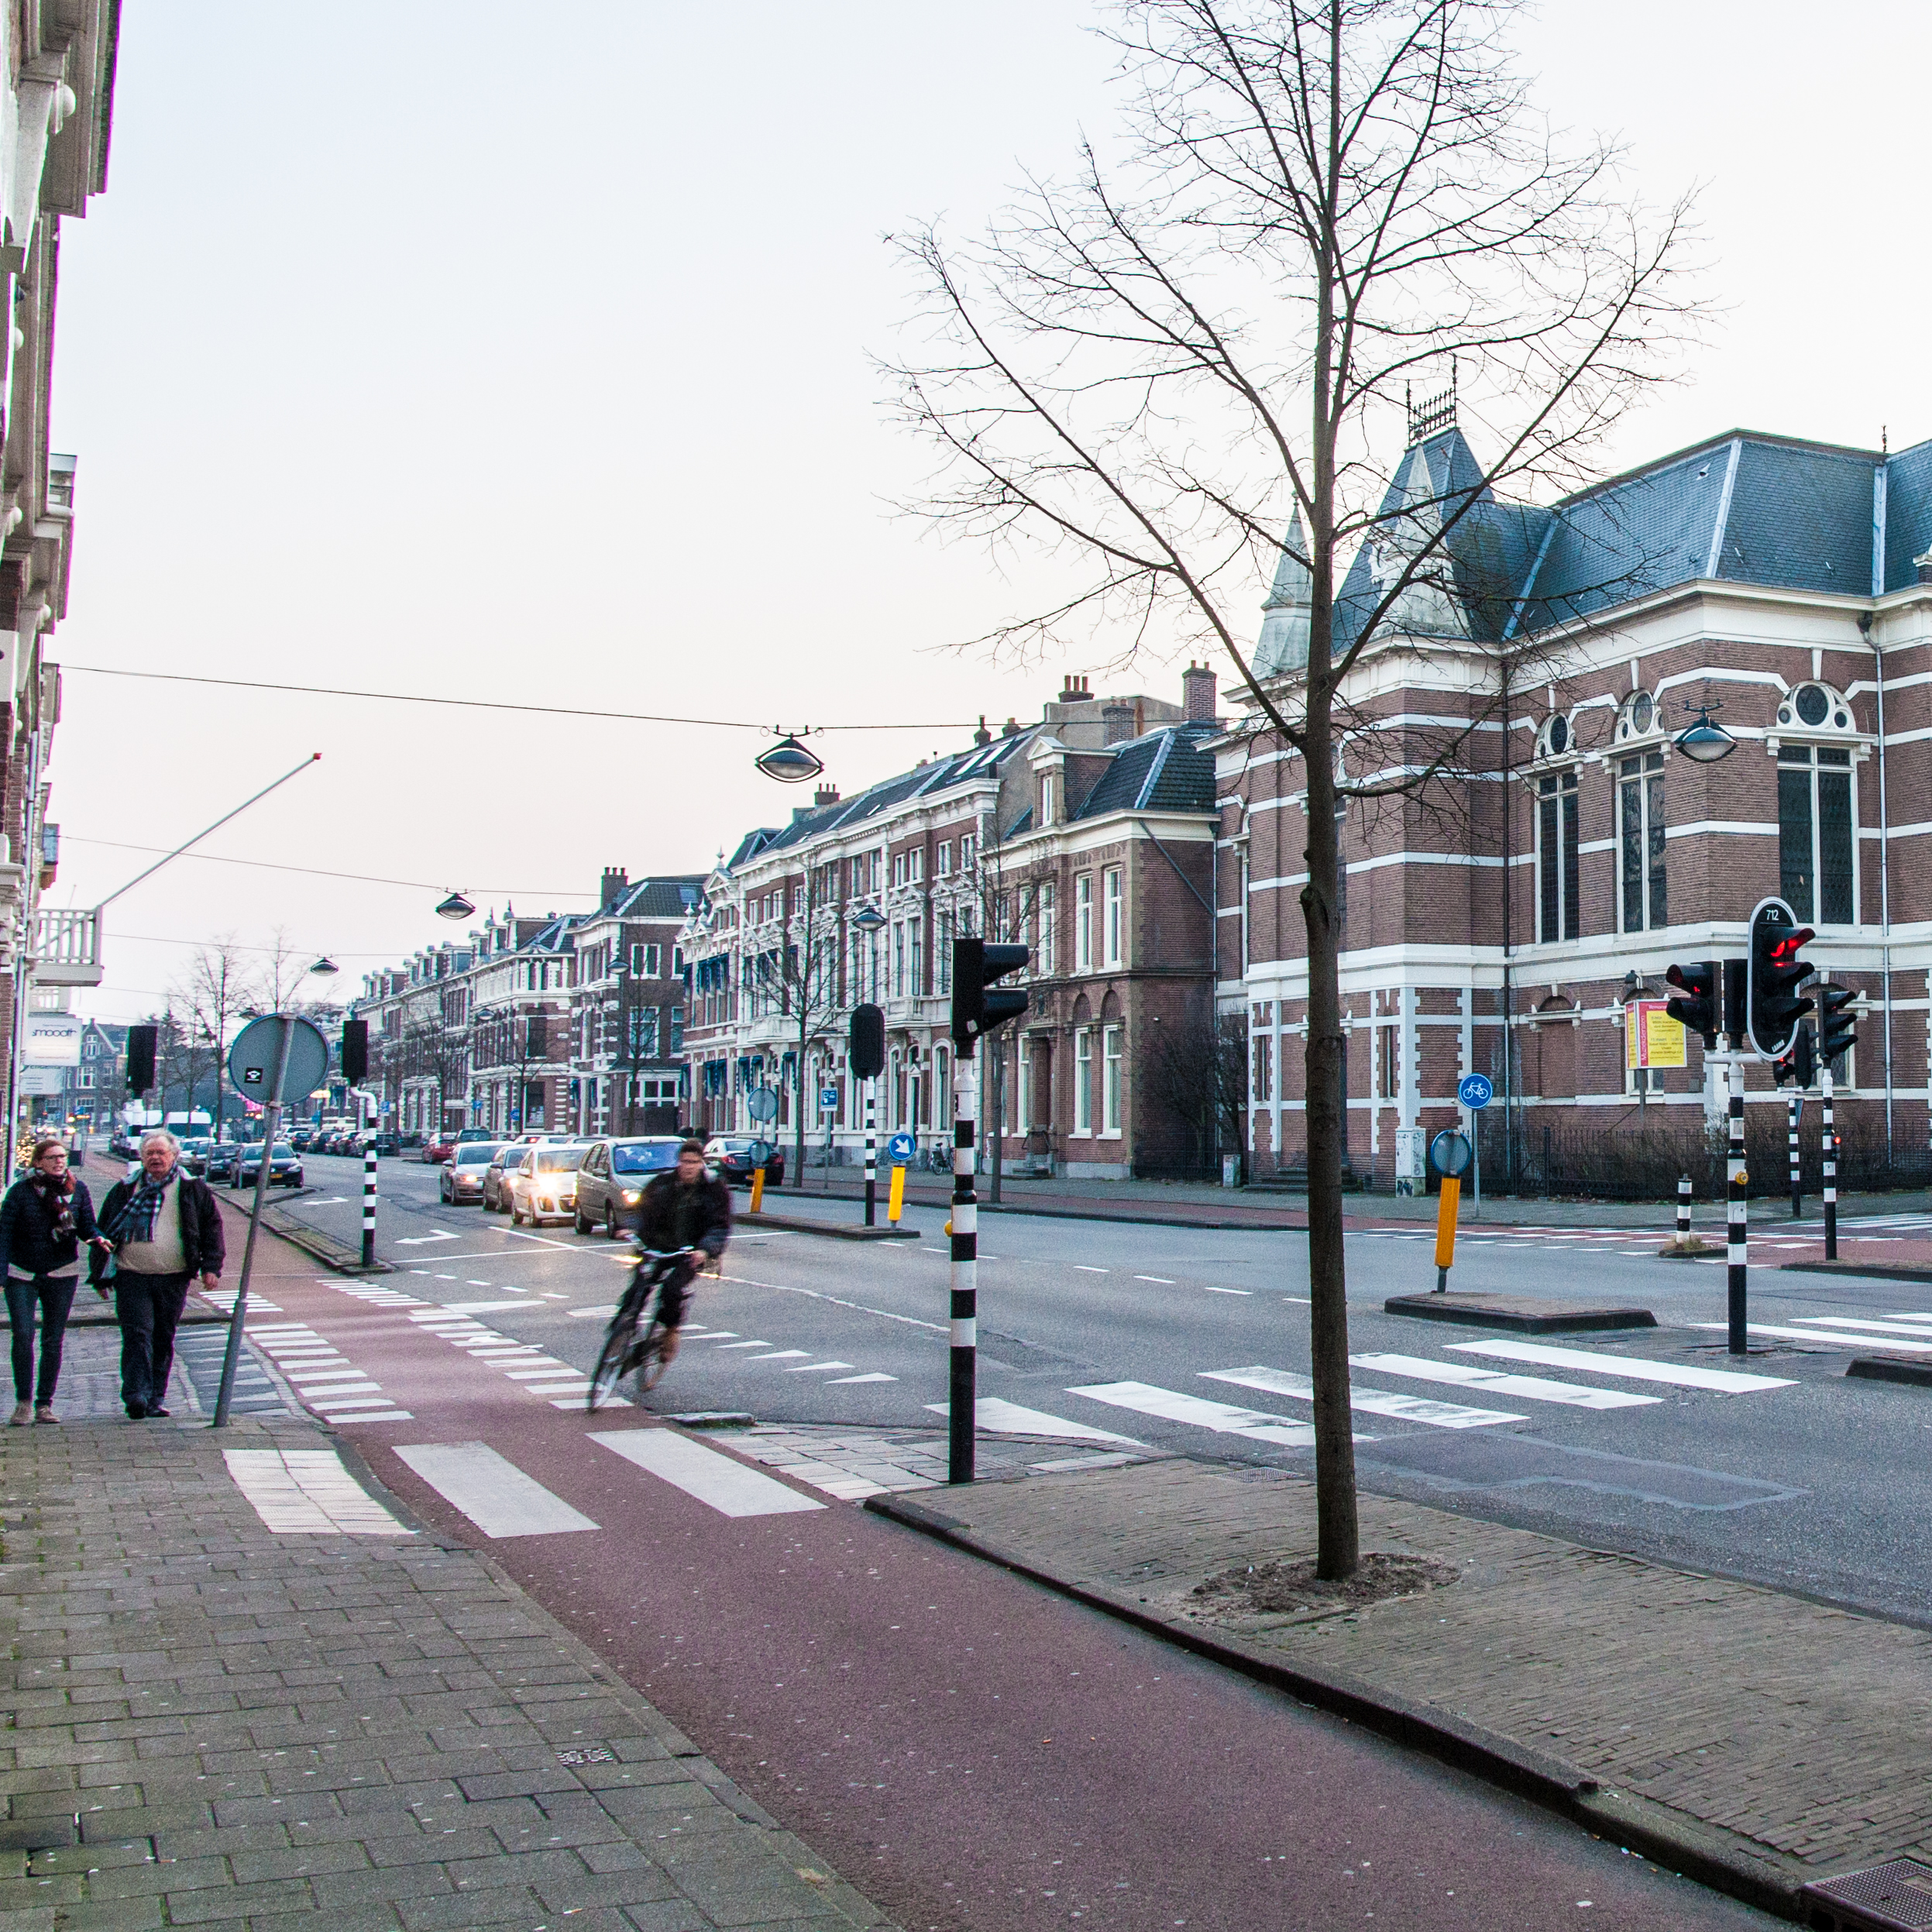 This street is on the edge of Haarlem's Centrum area withcompletely separated lanes and signalling.